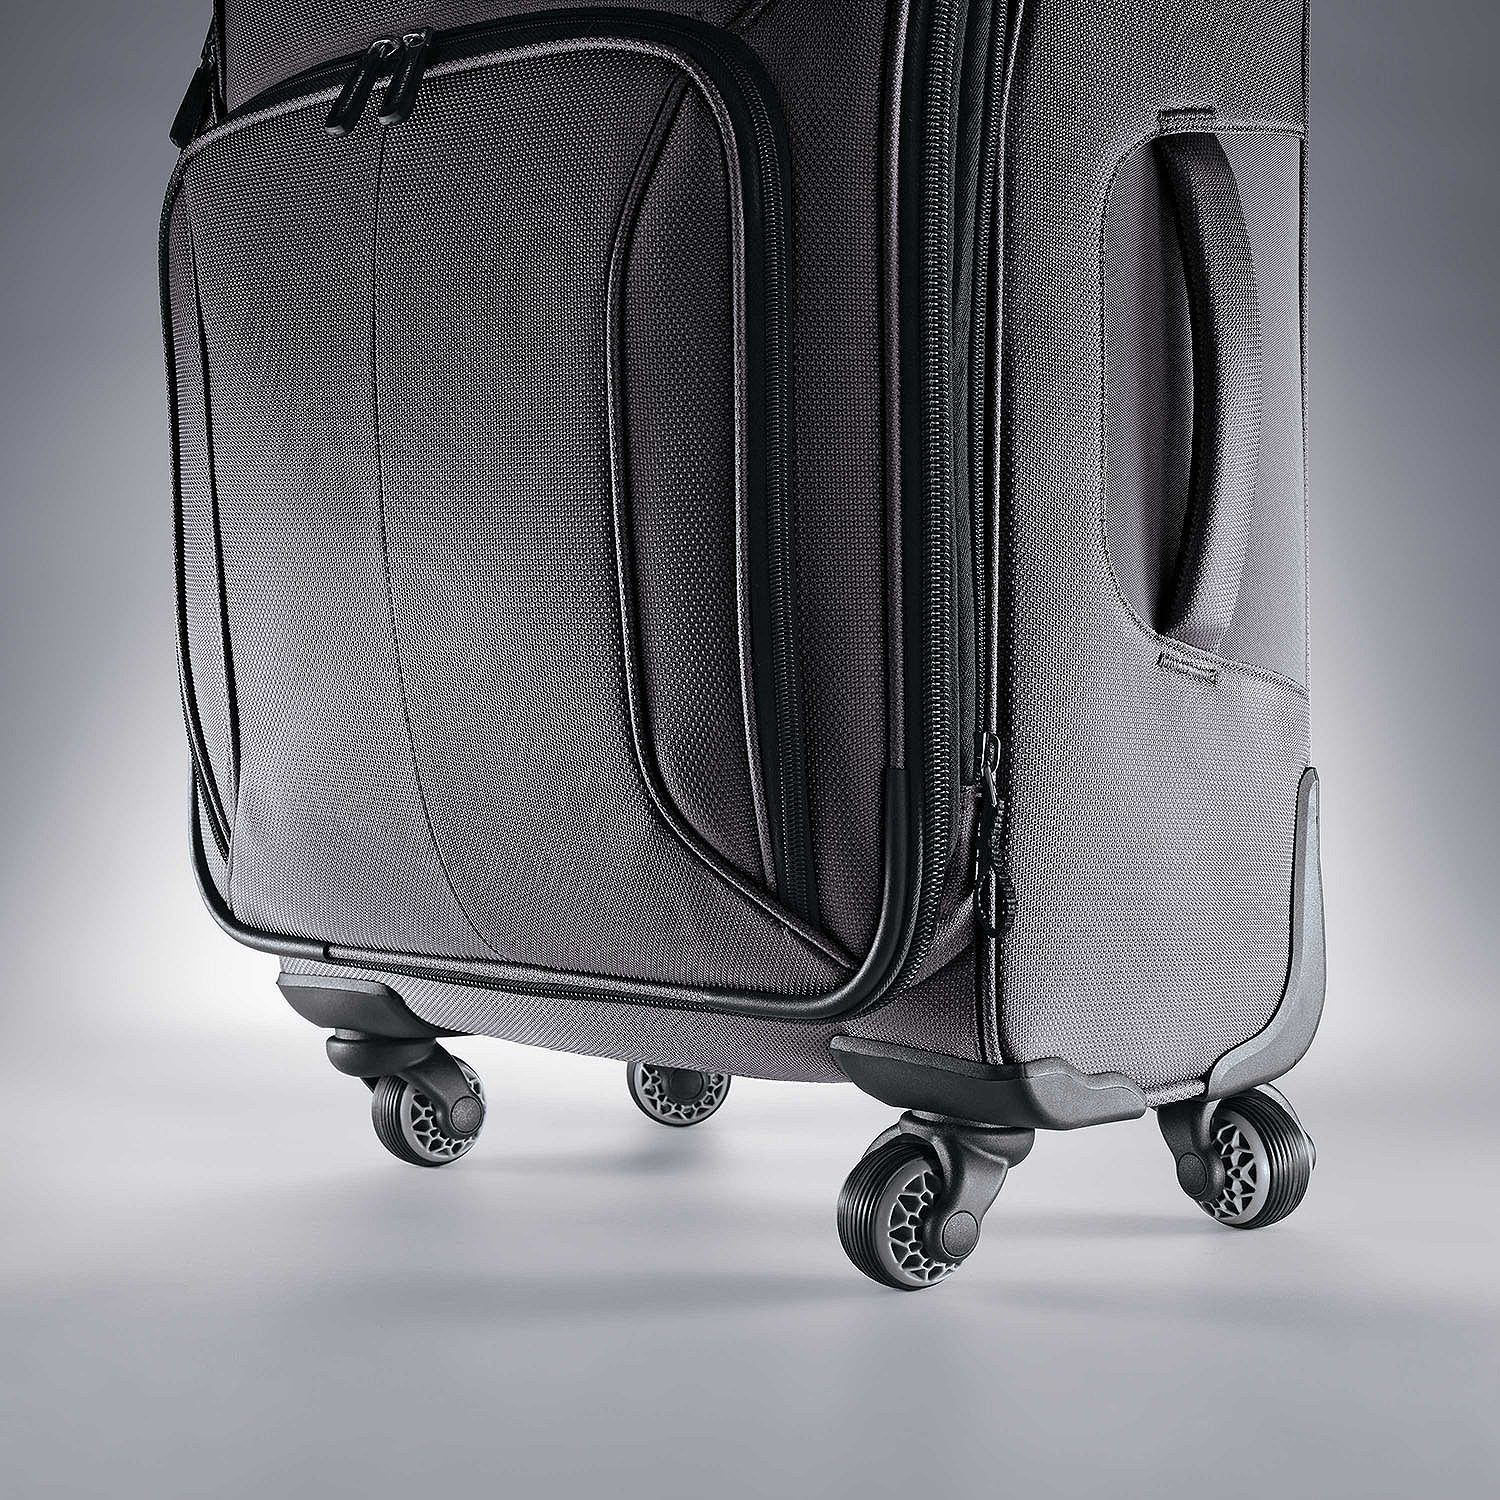 a0b6fffd1020 Samsonite Spherion 2Piece Luggage Set Charcoal *** Figure out more ...